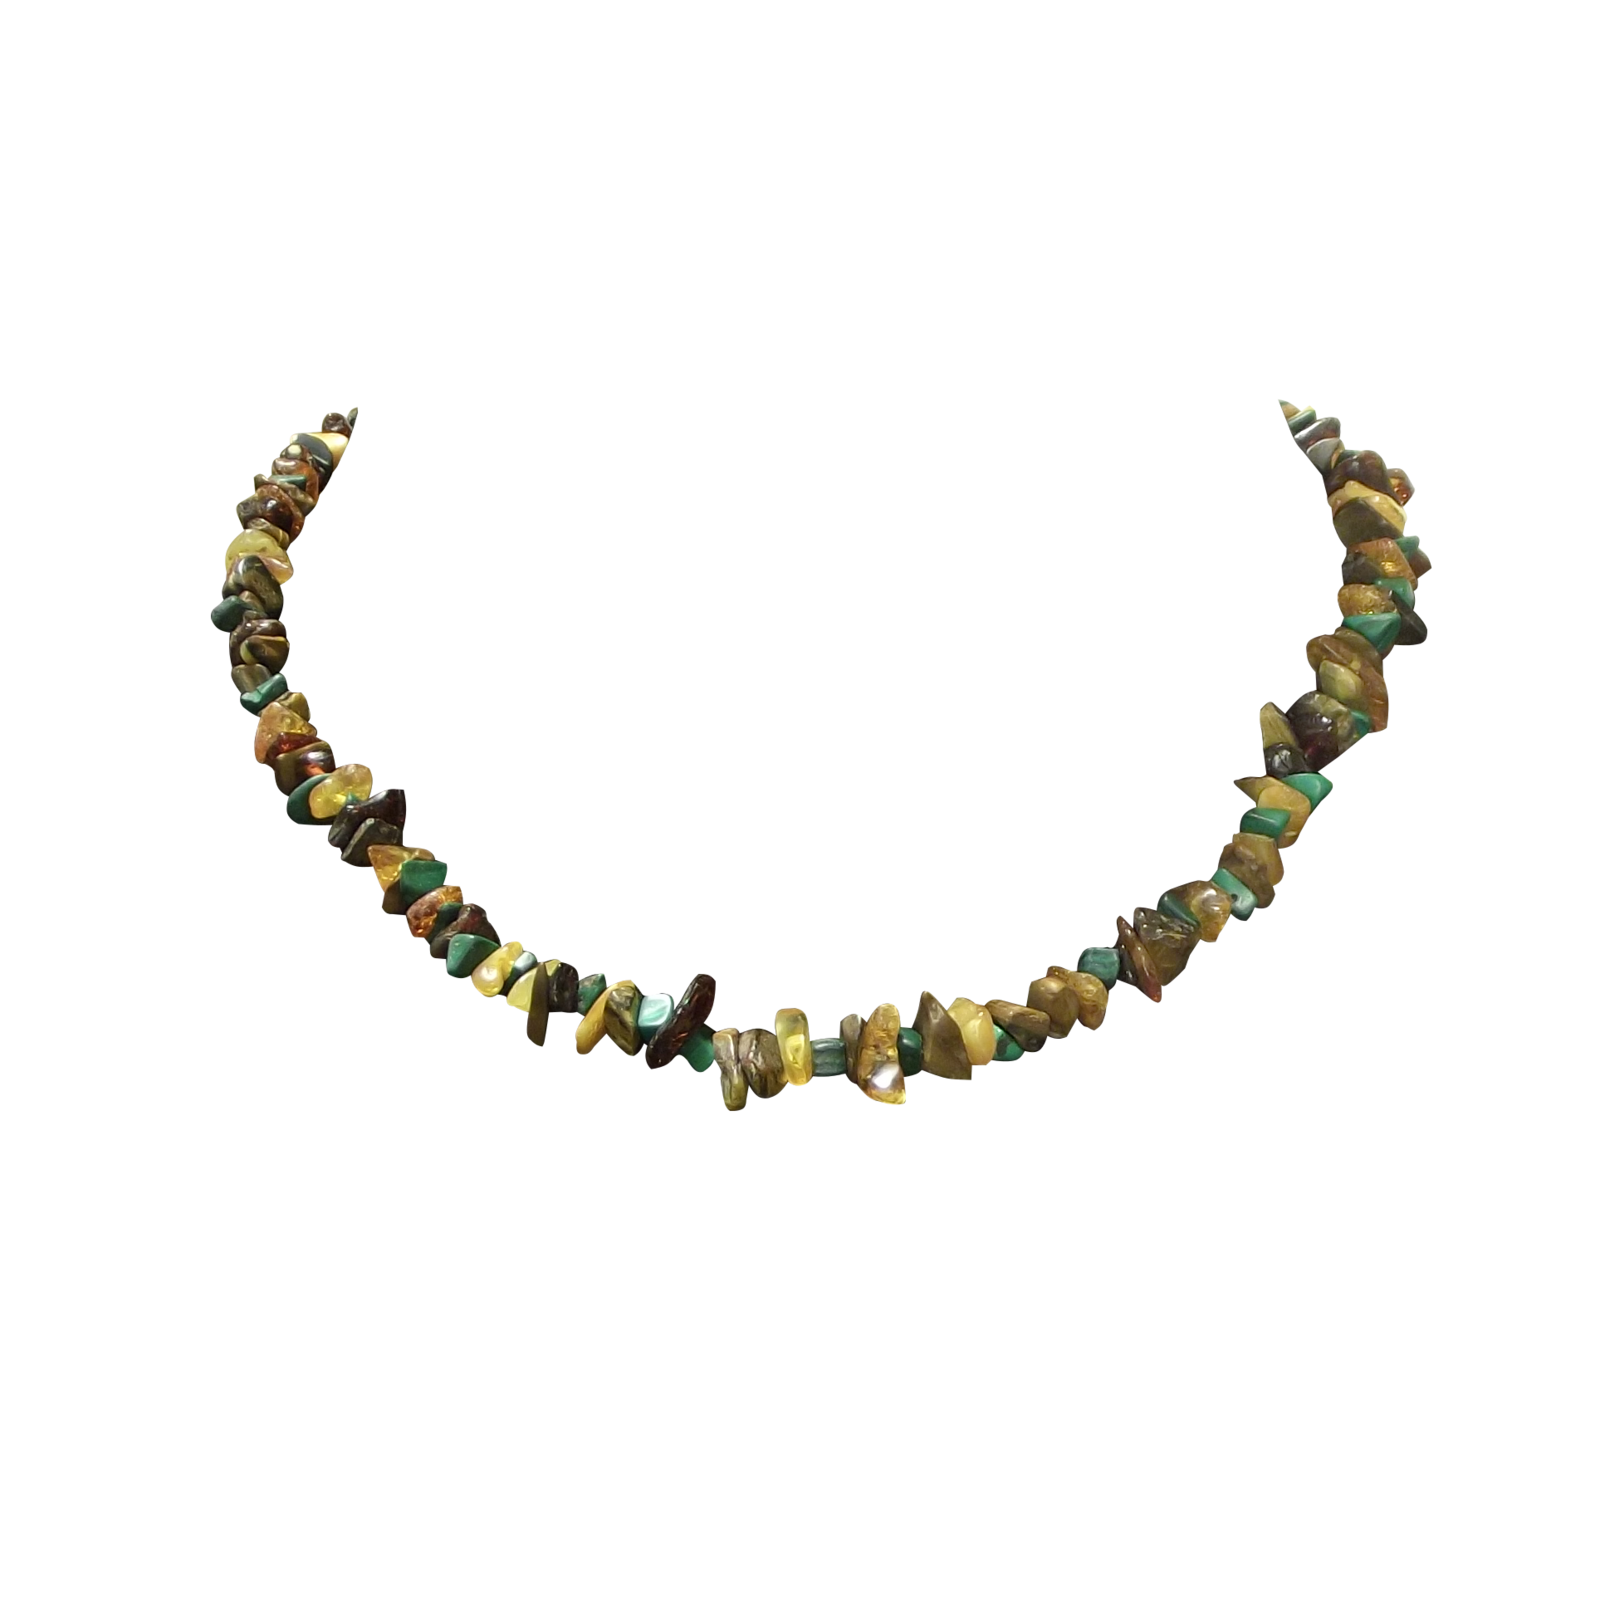 Stones Necklace Png Picture image #45124